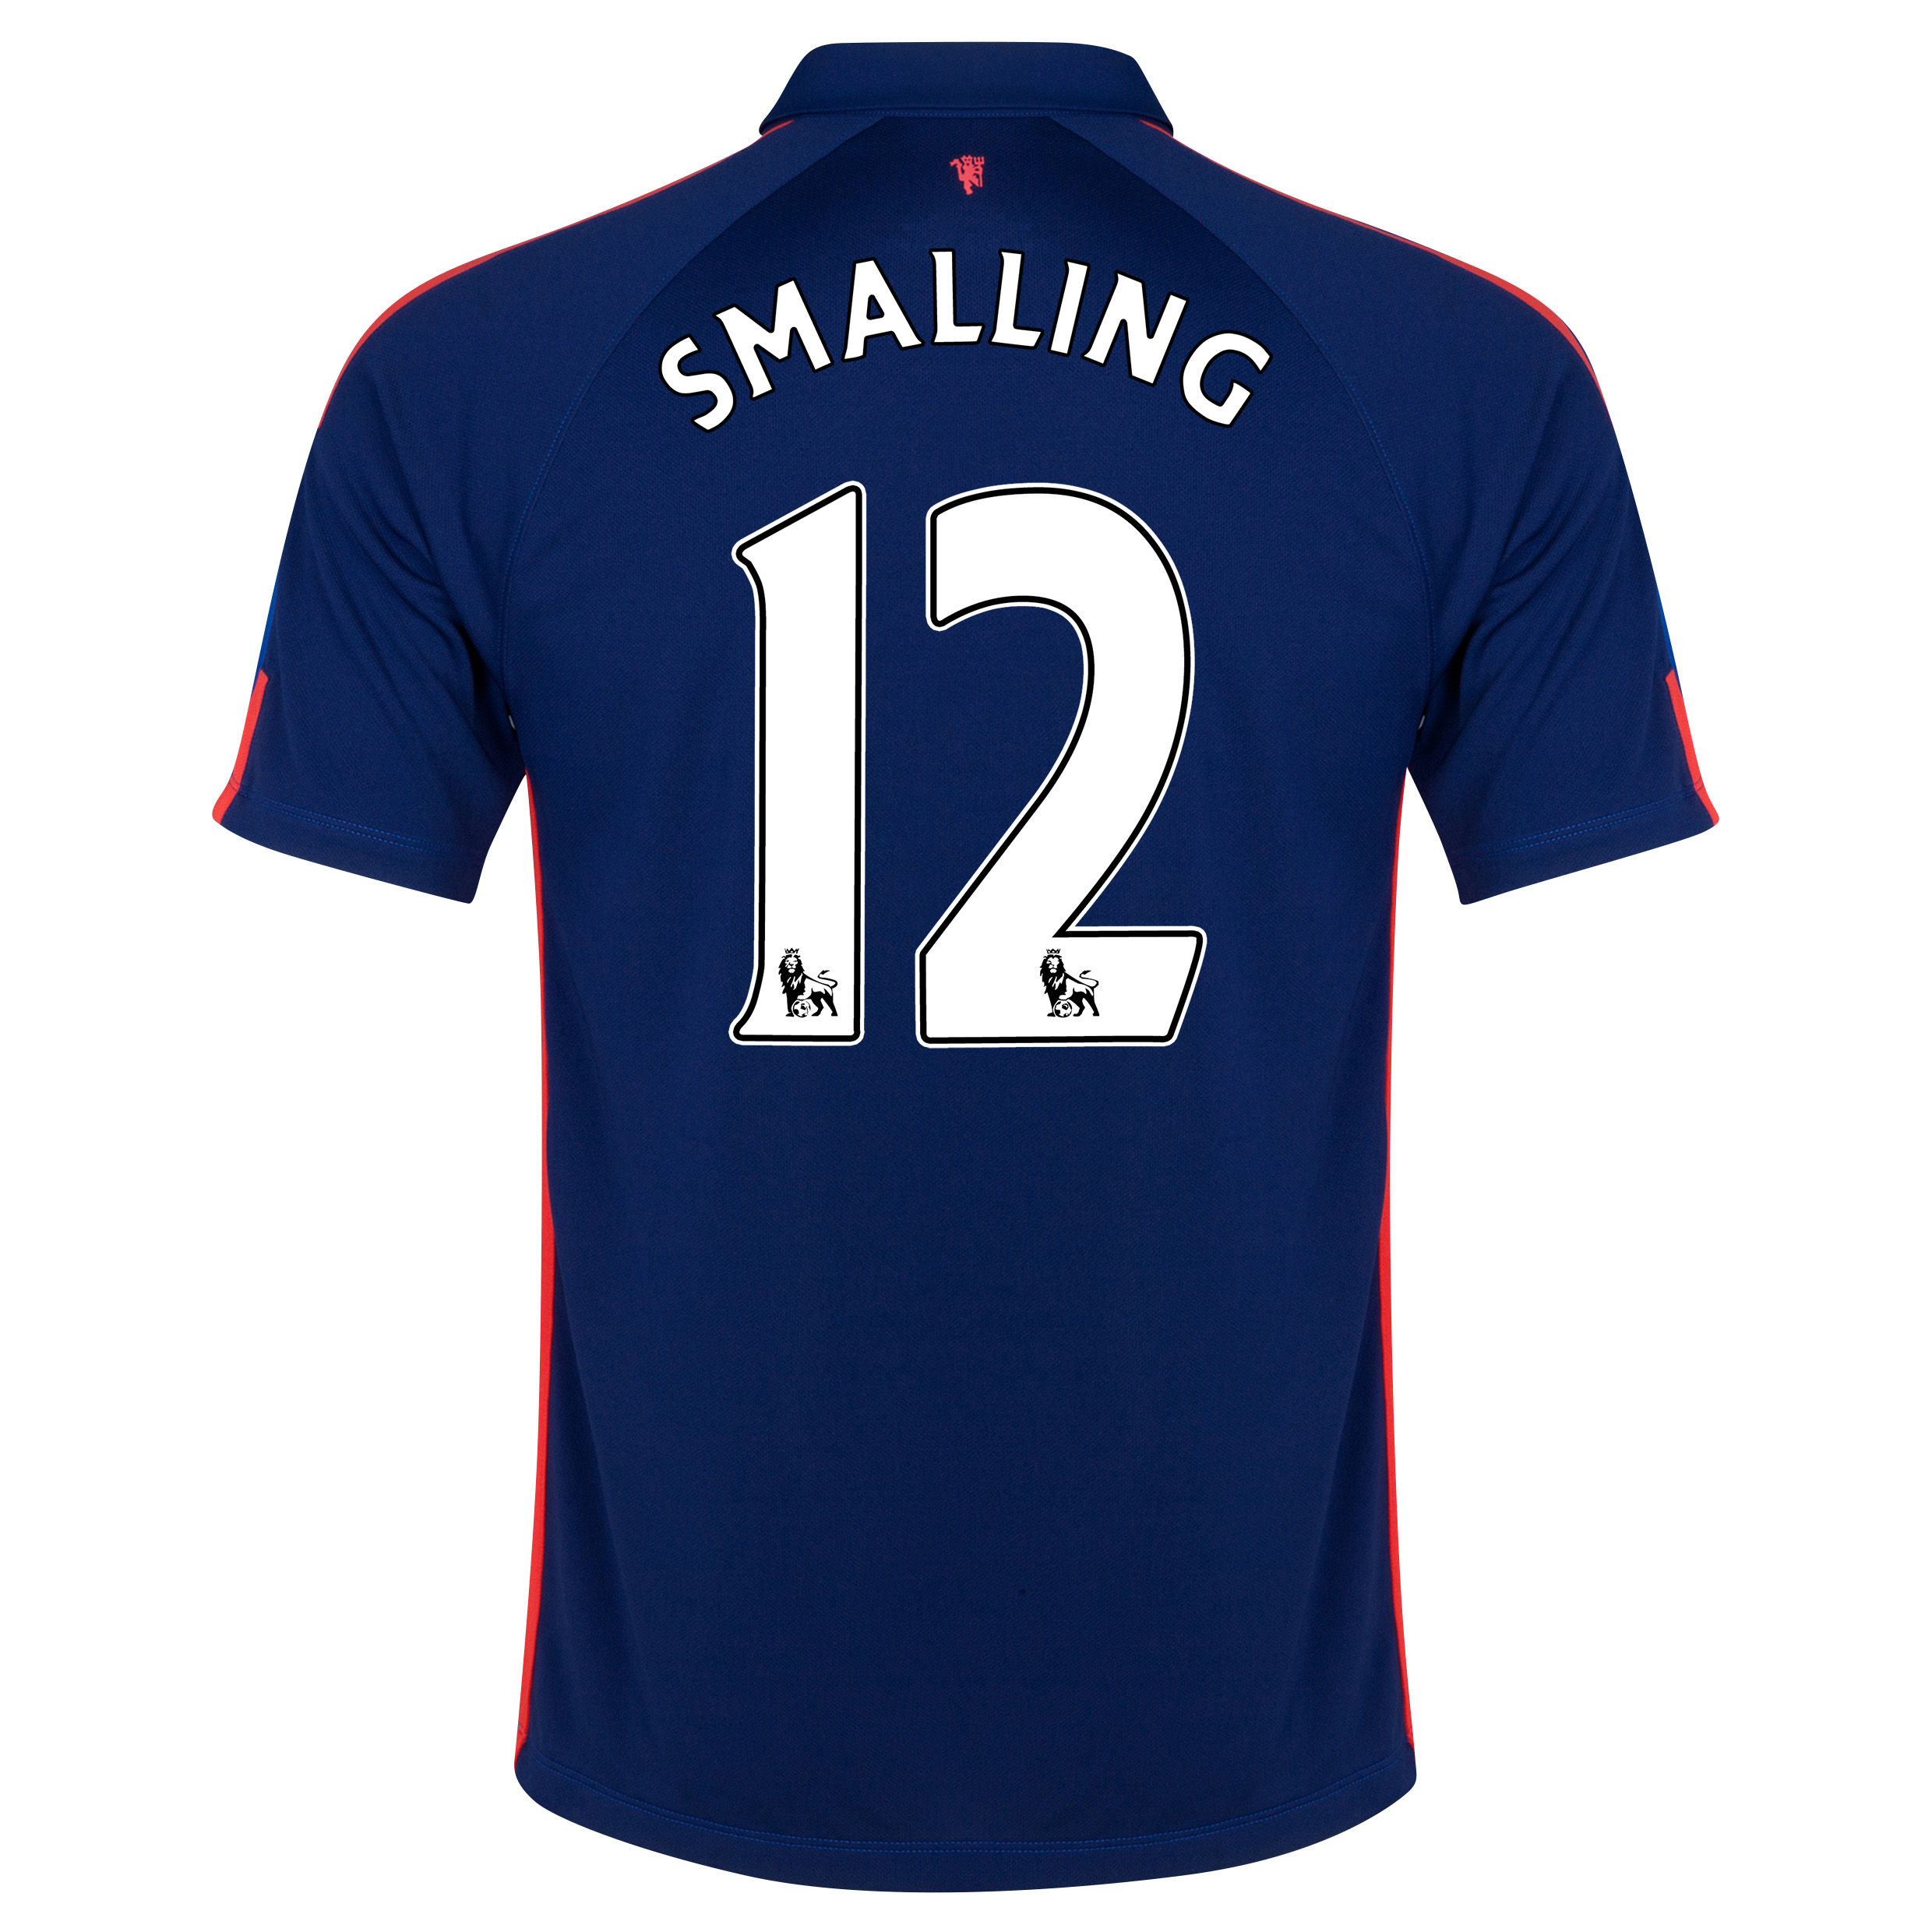 Manchester United Third Shirt 2014/15 with Smalling 12 printing